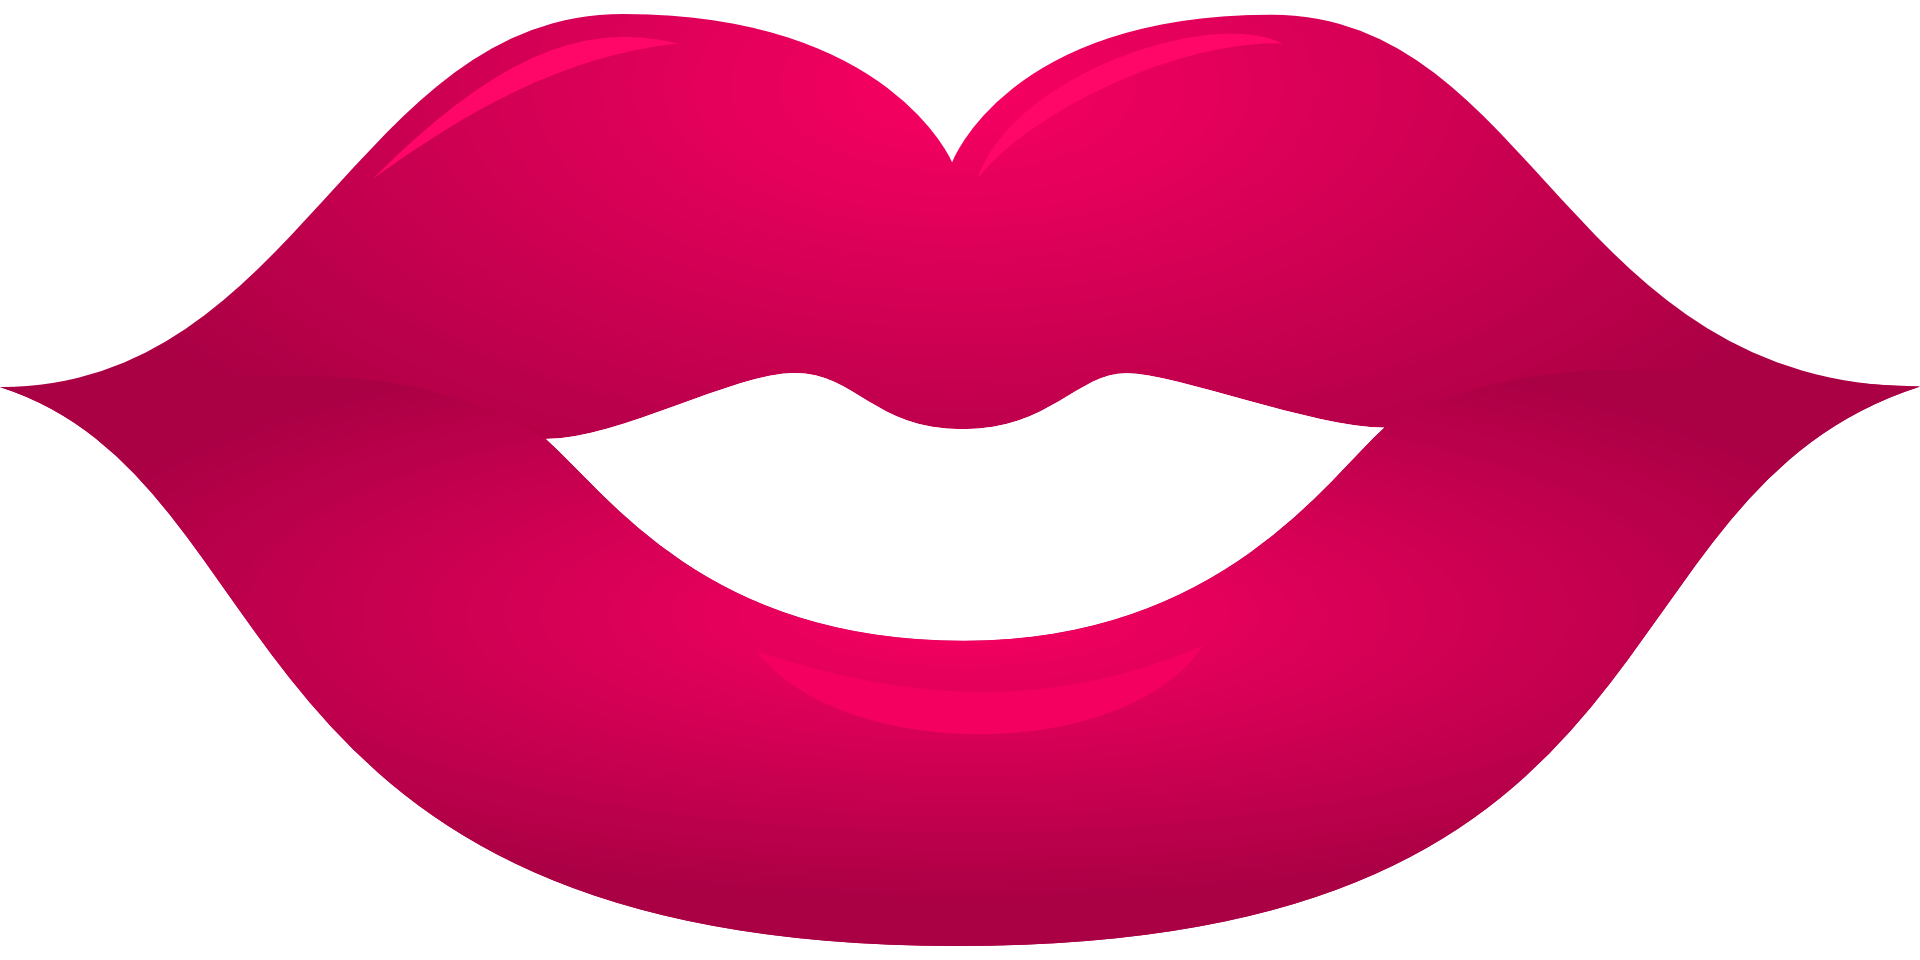 Clipart mouth photo booth lip. Lips template free printable